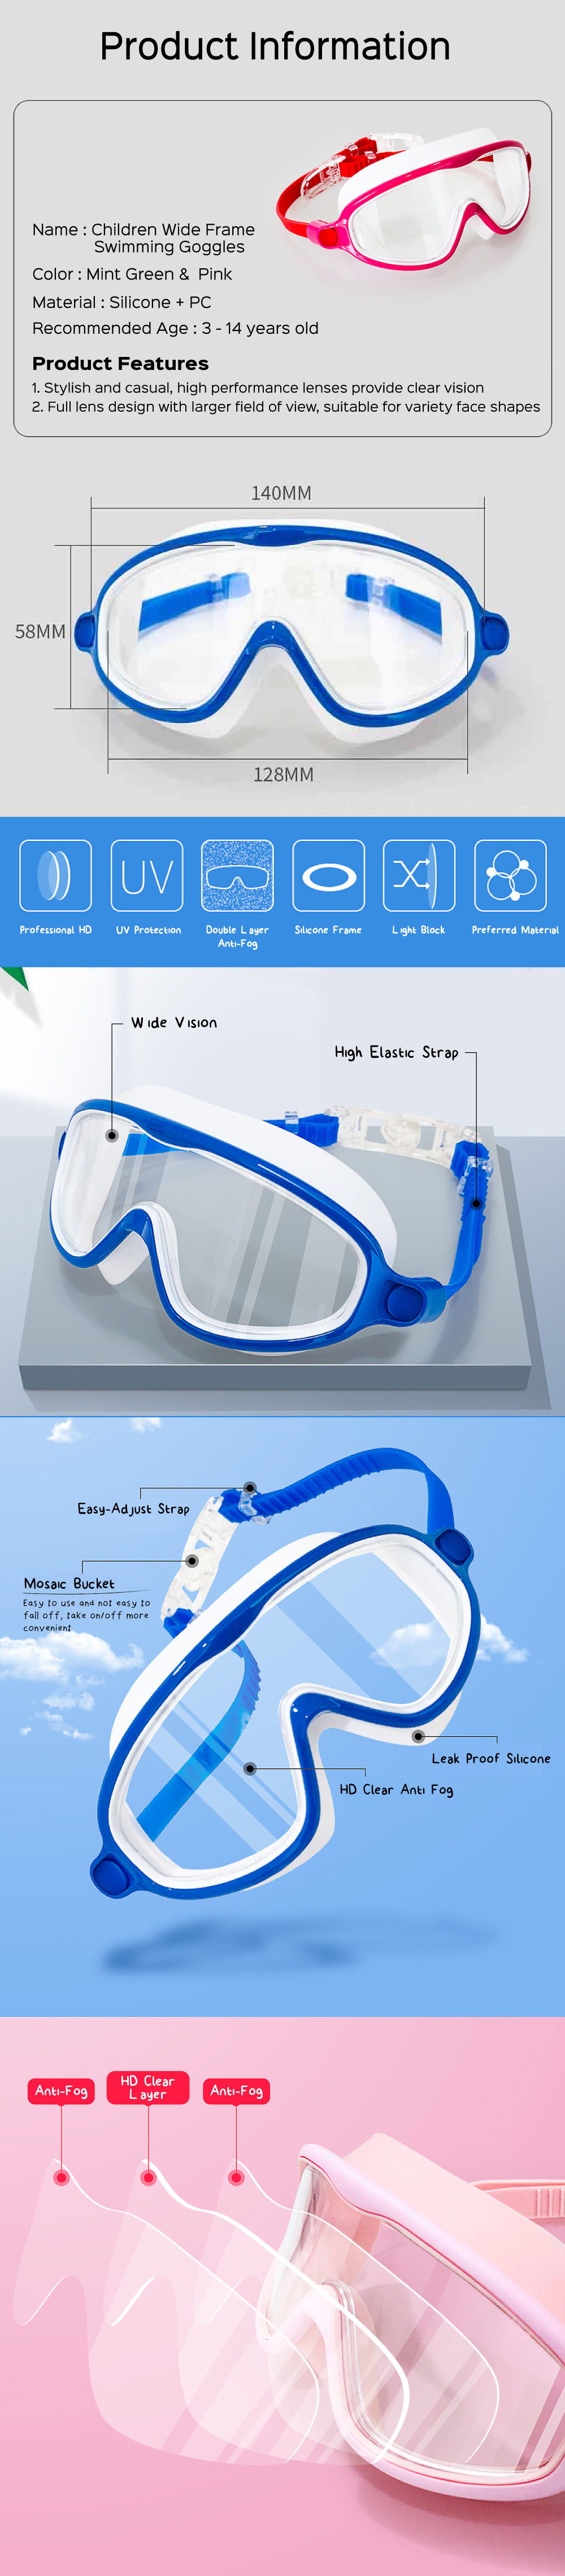 Goggles-PD_1000px-(3).jpg